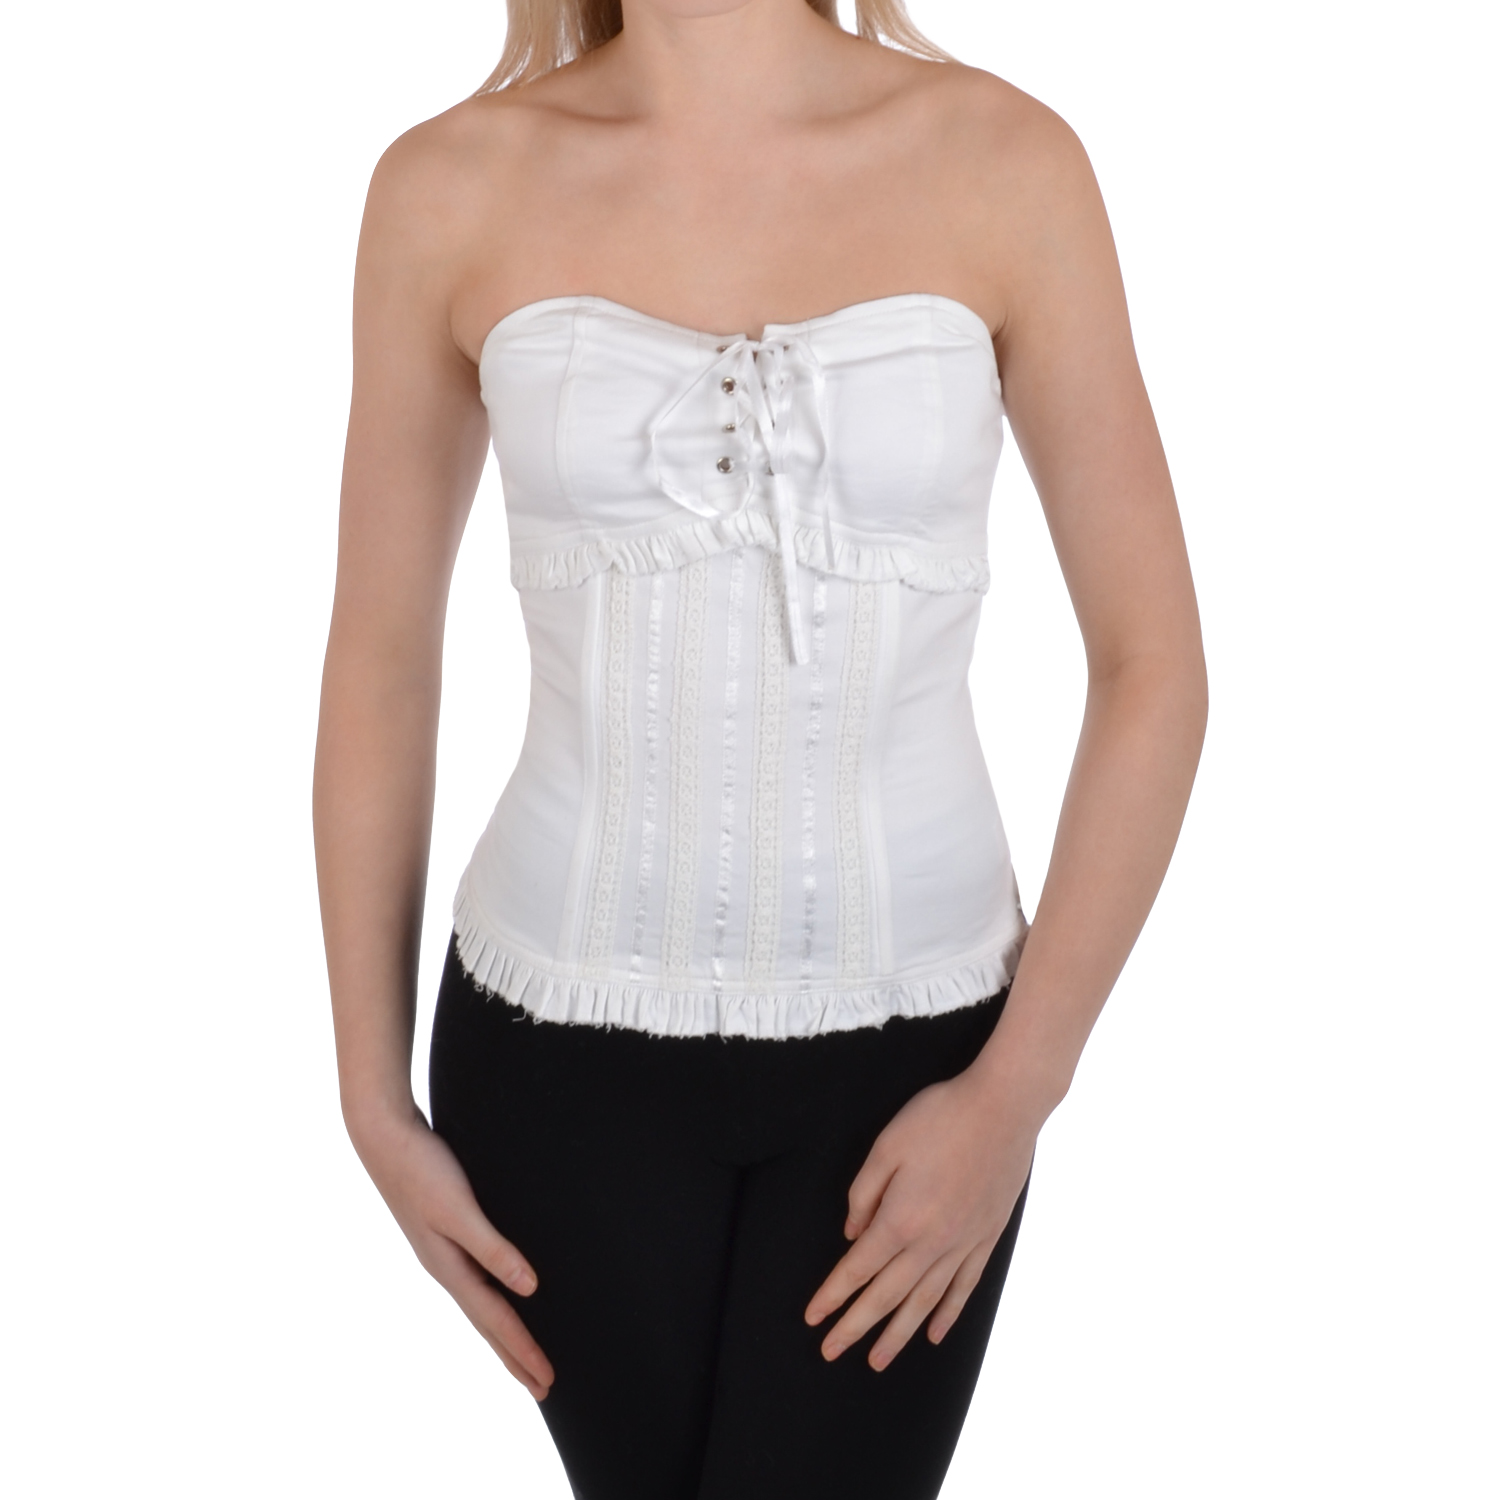 Find women bustier tops at ShopStyle. Shop the latest collection of women bustier tops from the most popular stores - all in one place.